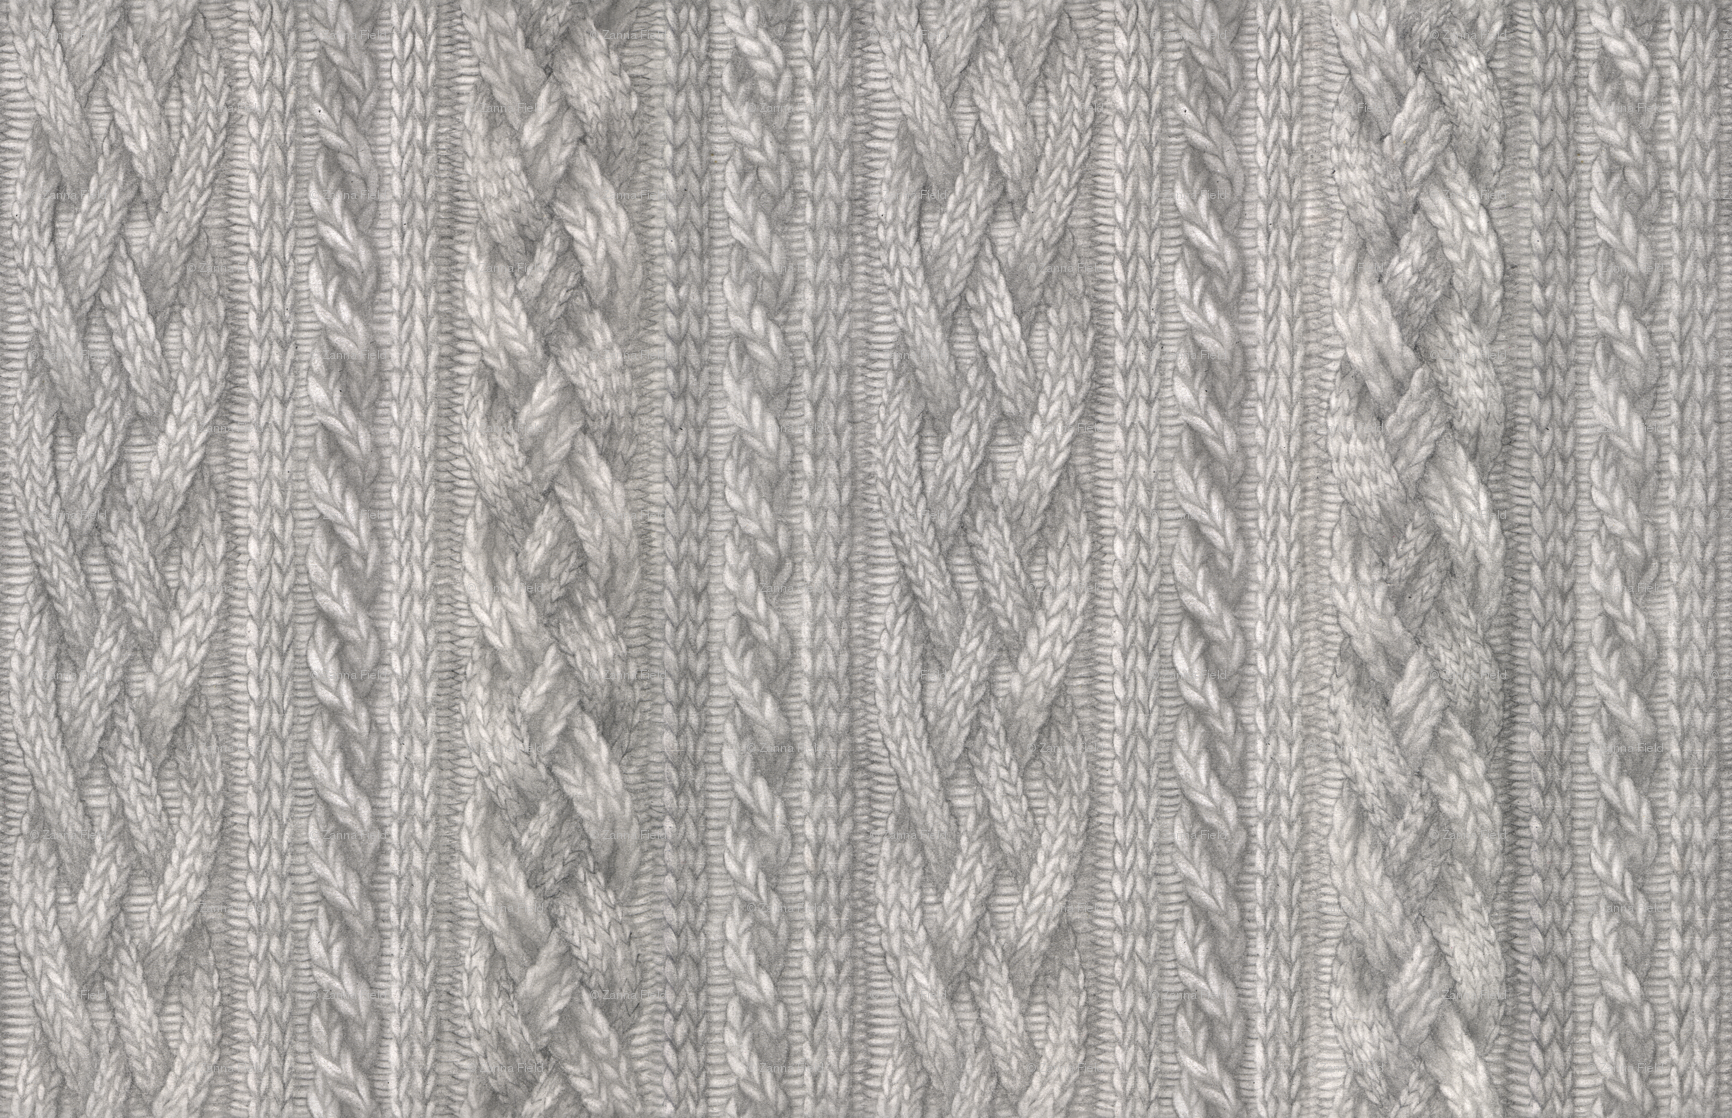 Cable Knit wallpaper - zhfield - Spoonflower